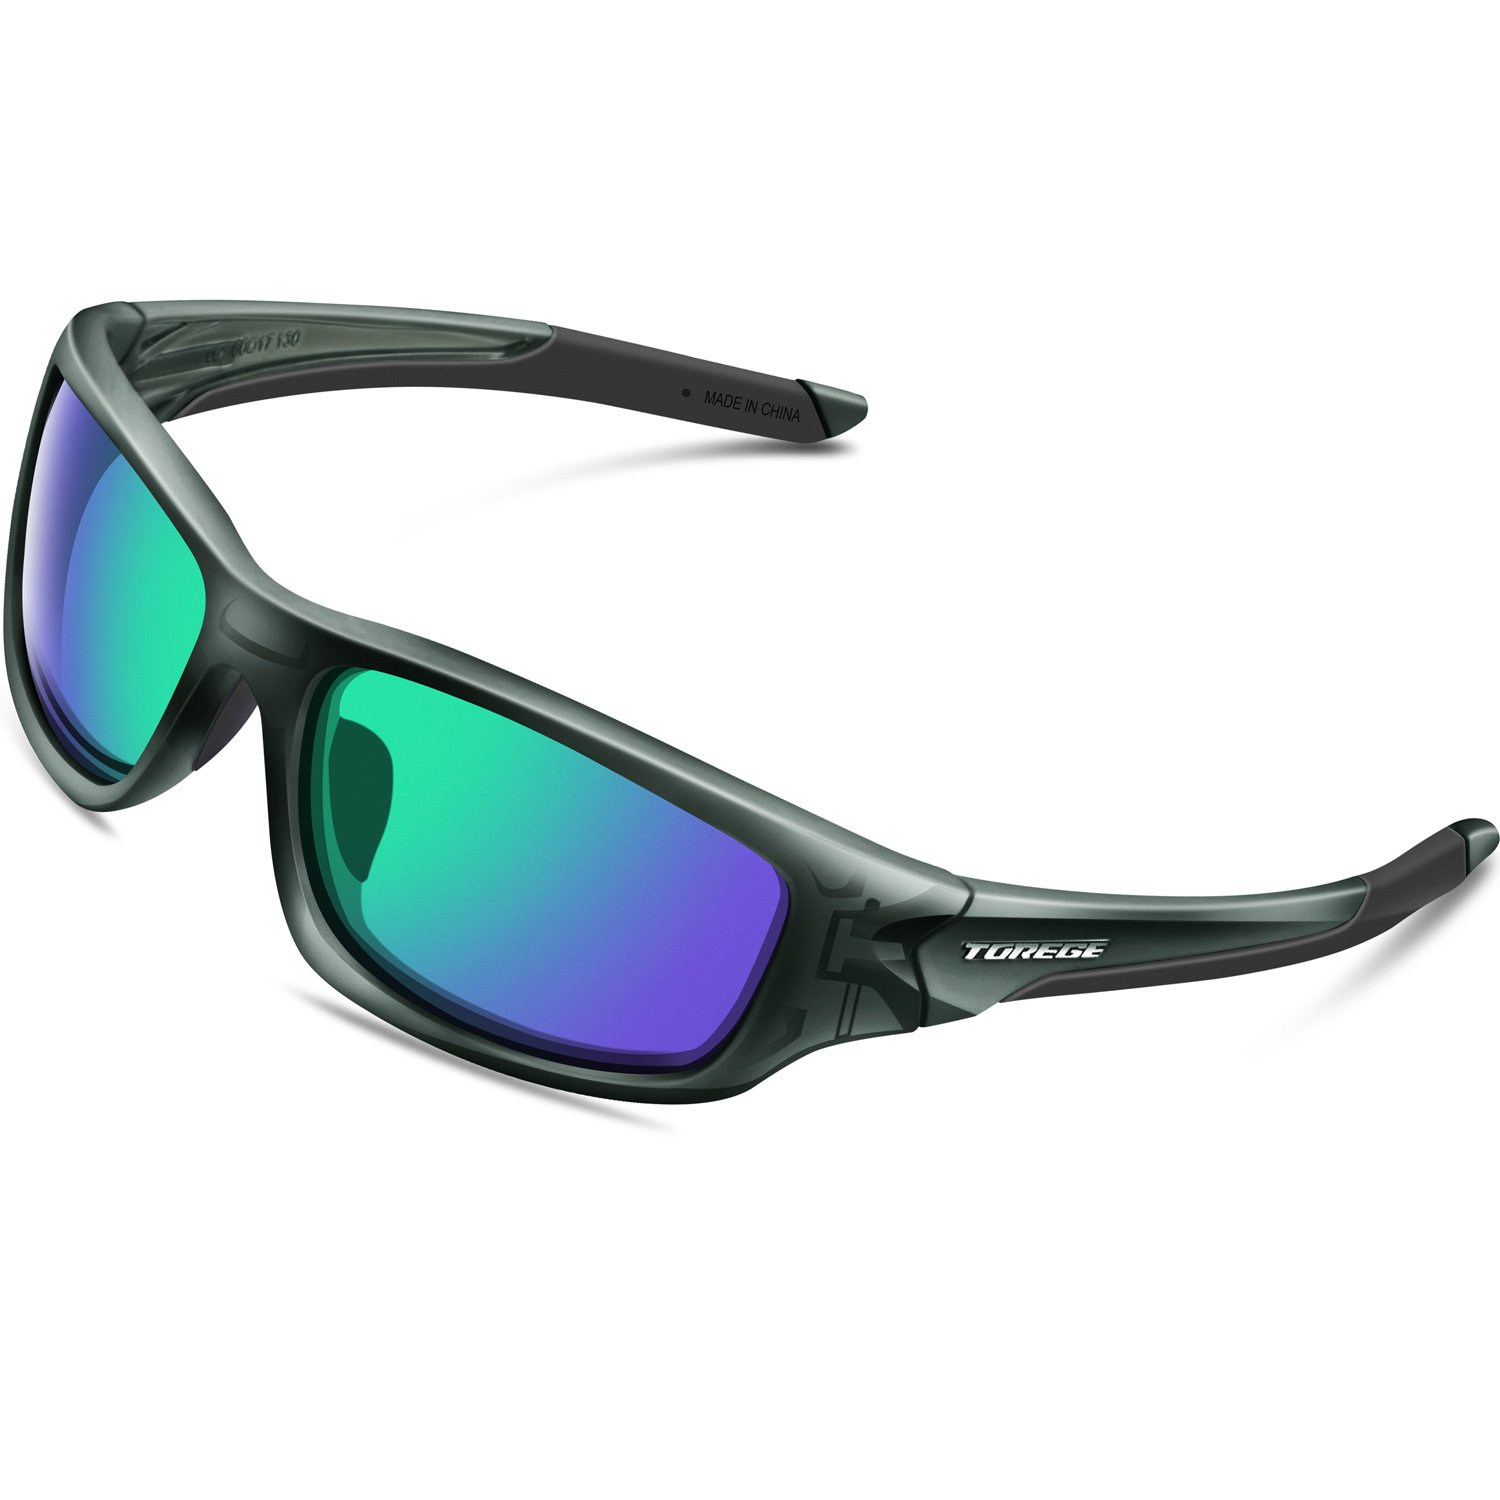 992f9bd570f8f Details about Torege Polarized Sports Sunglasses For Man Women Cycling  Running Fishing Golf